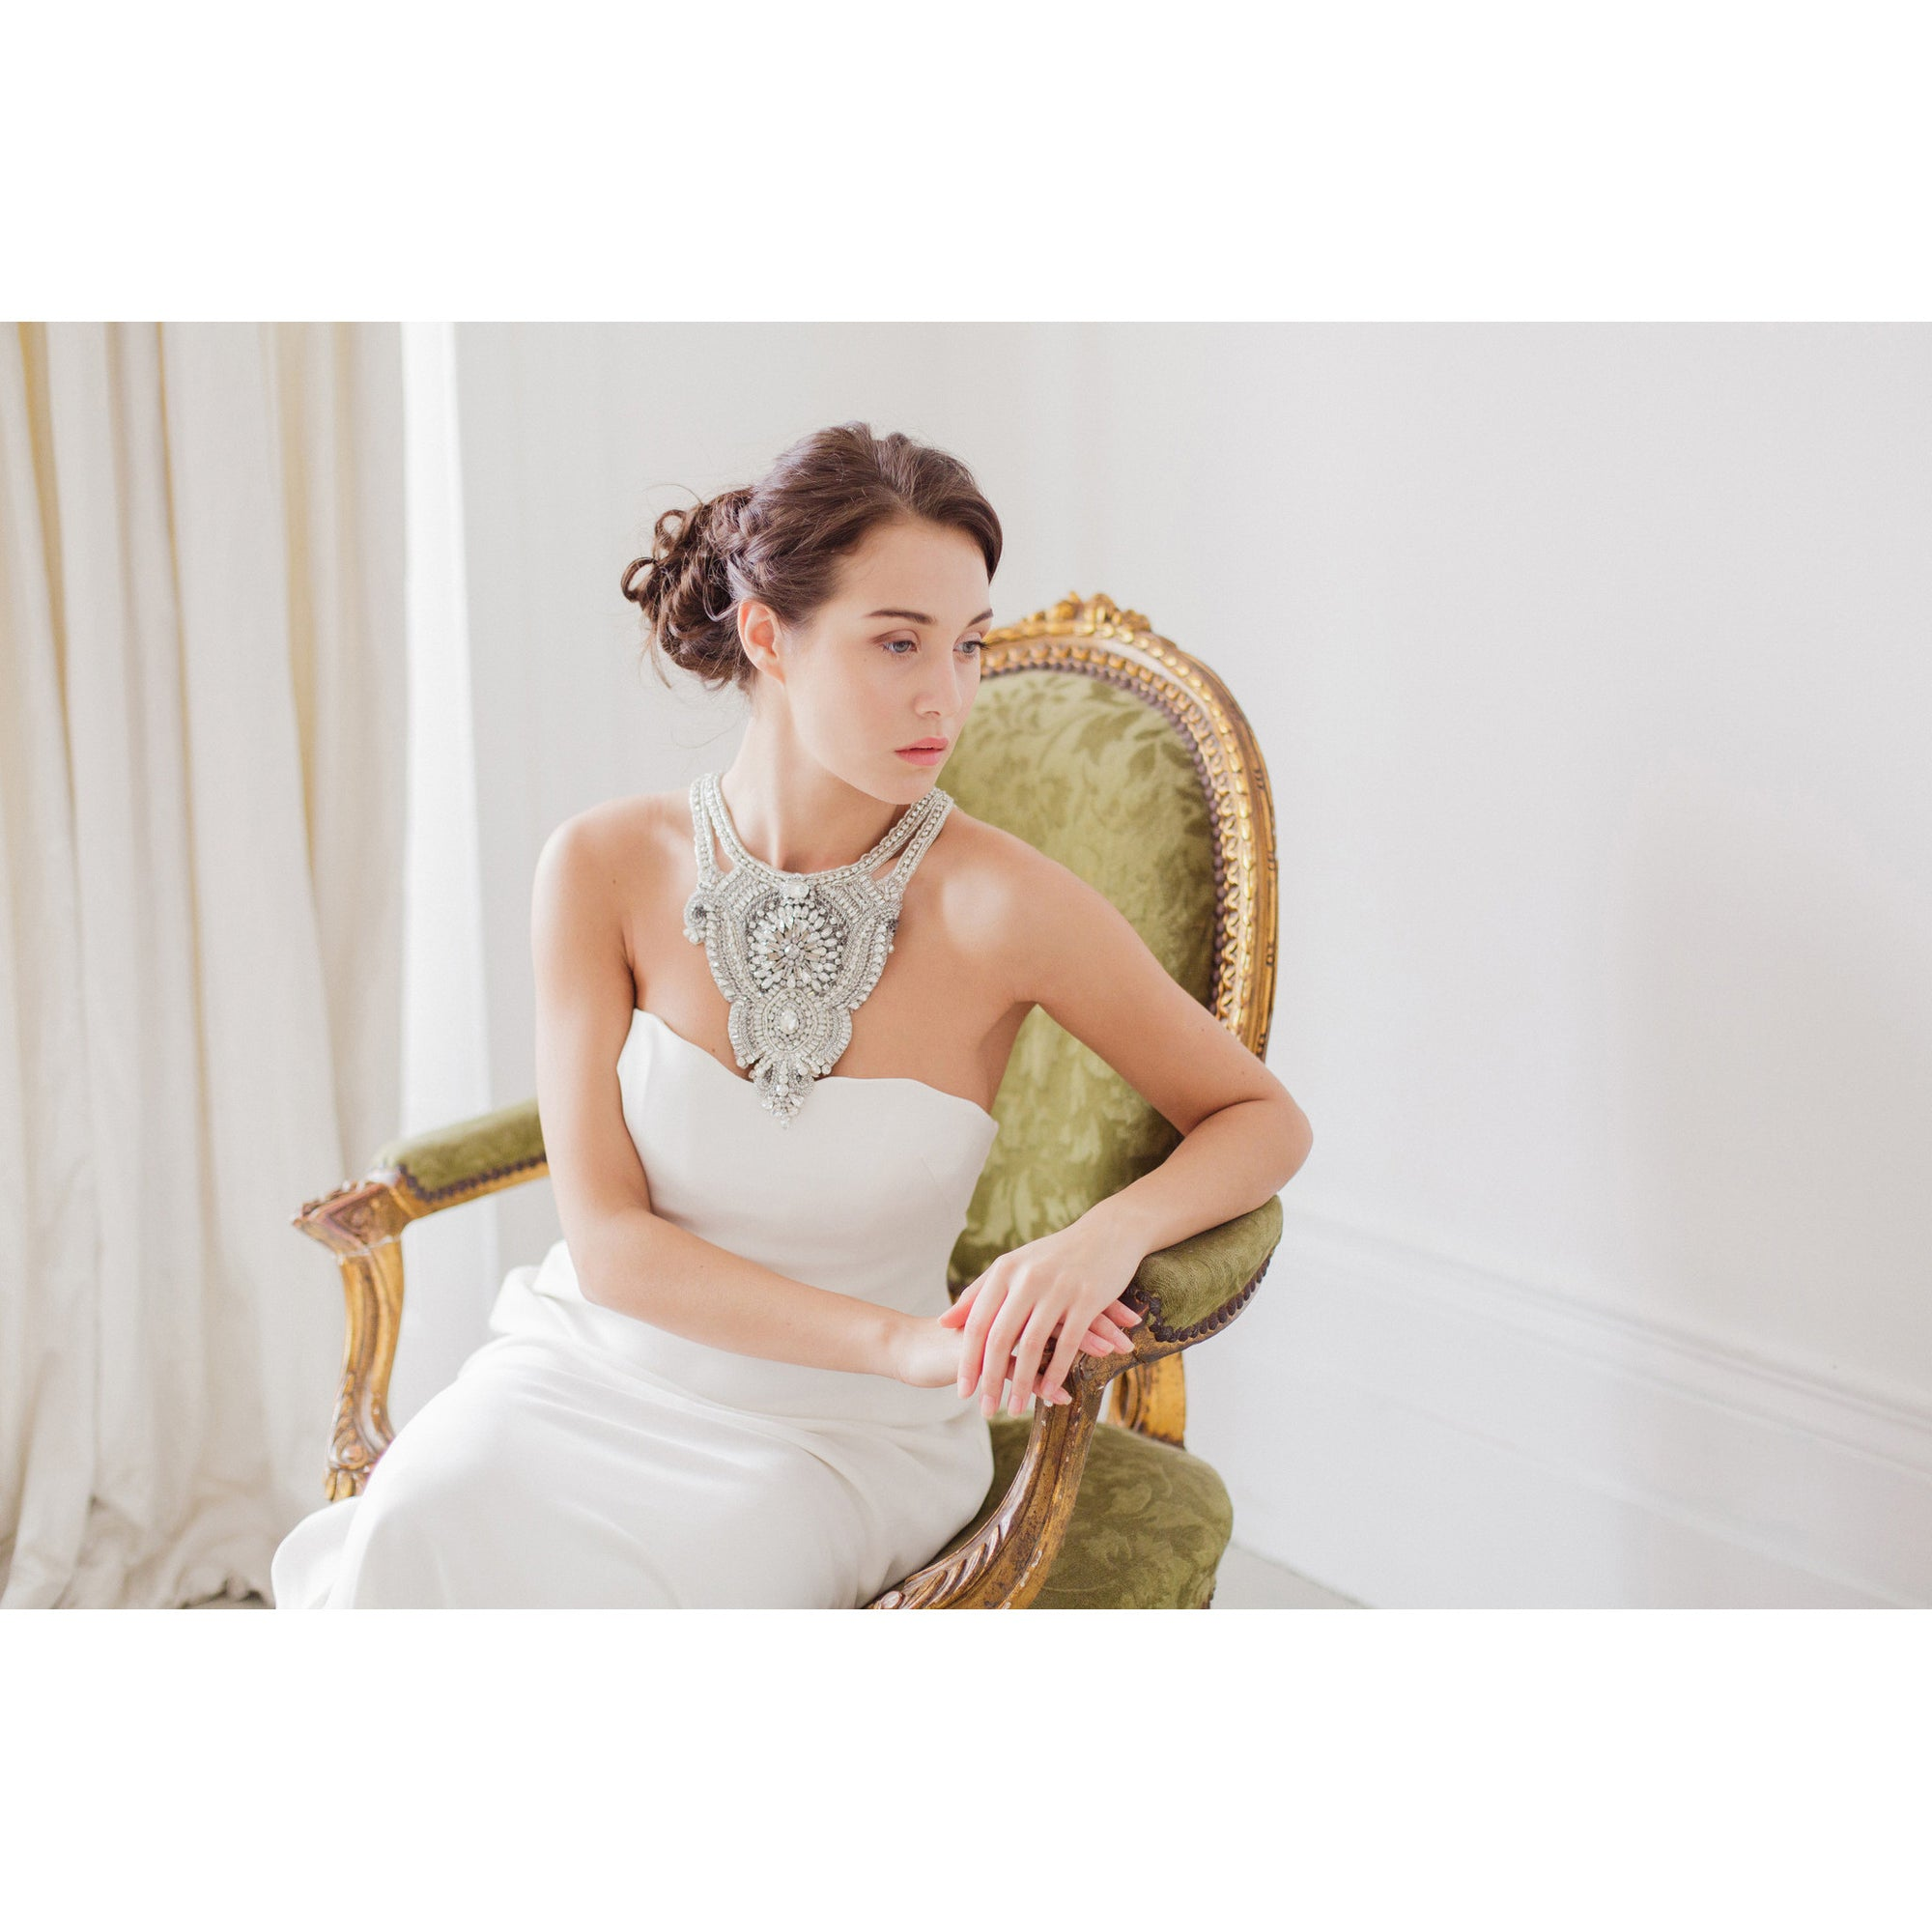 Victoria Bridal Statement Necklace - Couture - Bridal Necklace - Roman & French